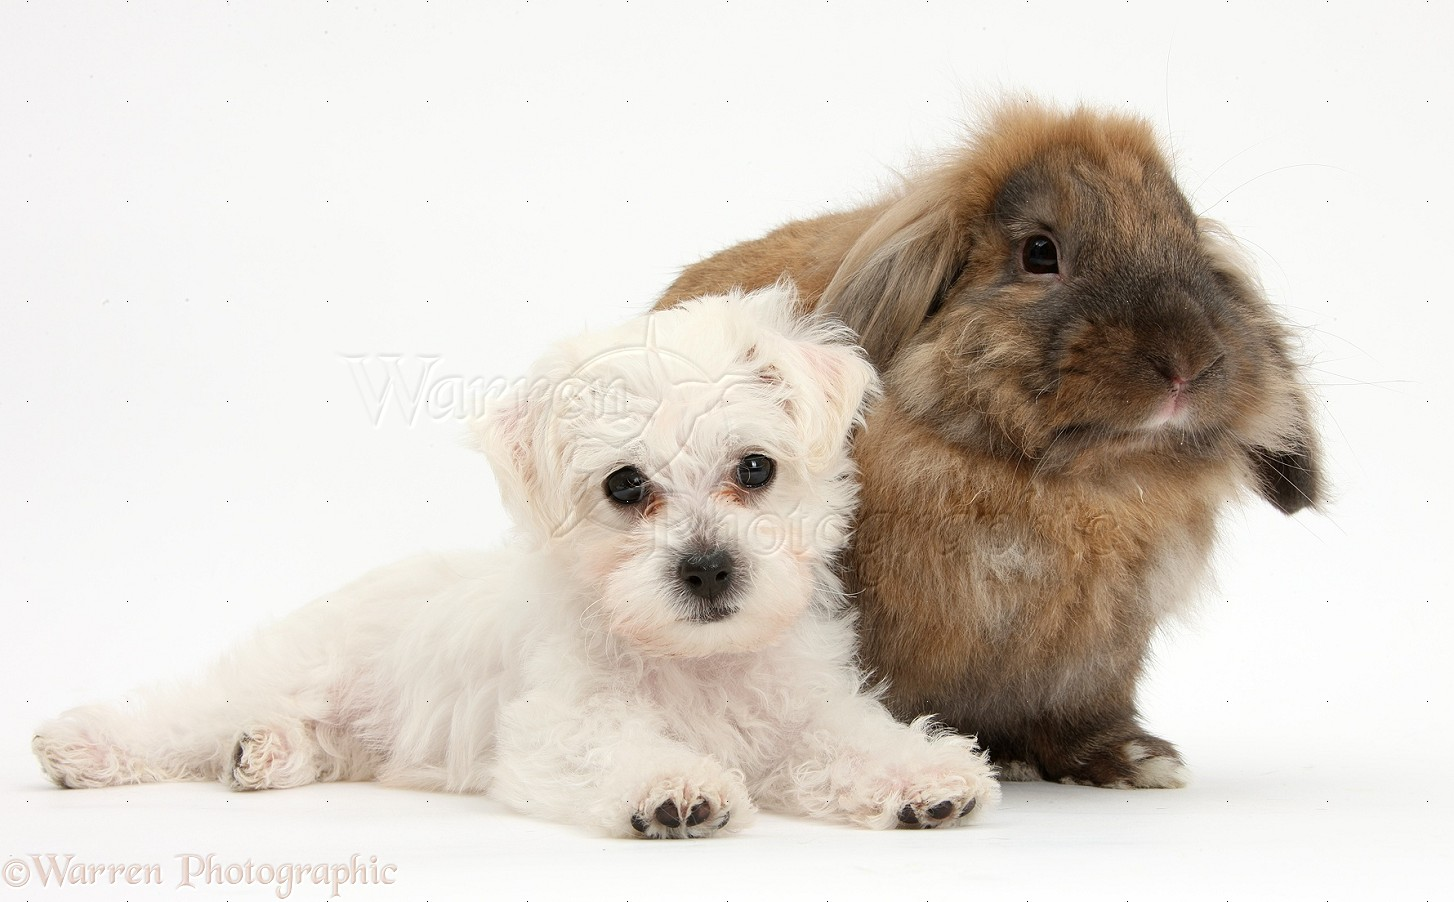 Pets Cute white Bichon x Yorkie puppy and rabbit photo WP